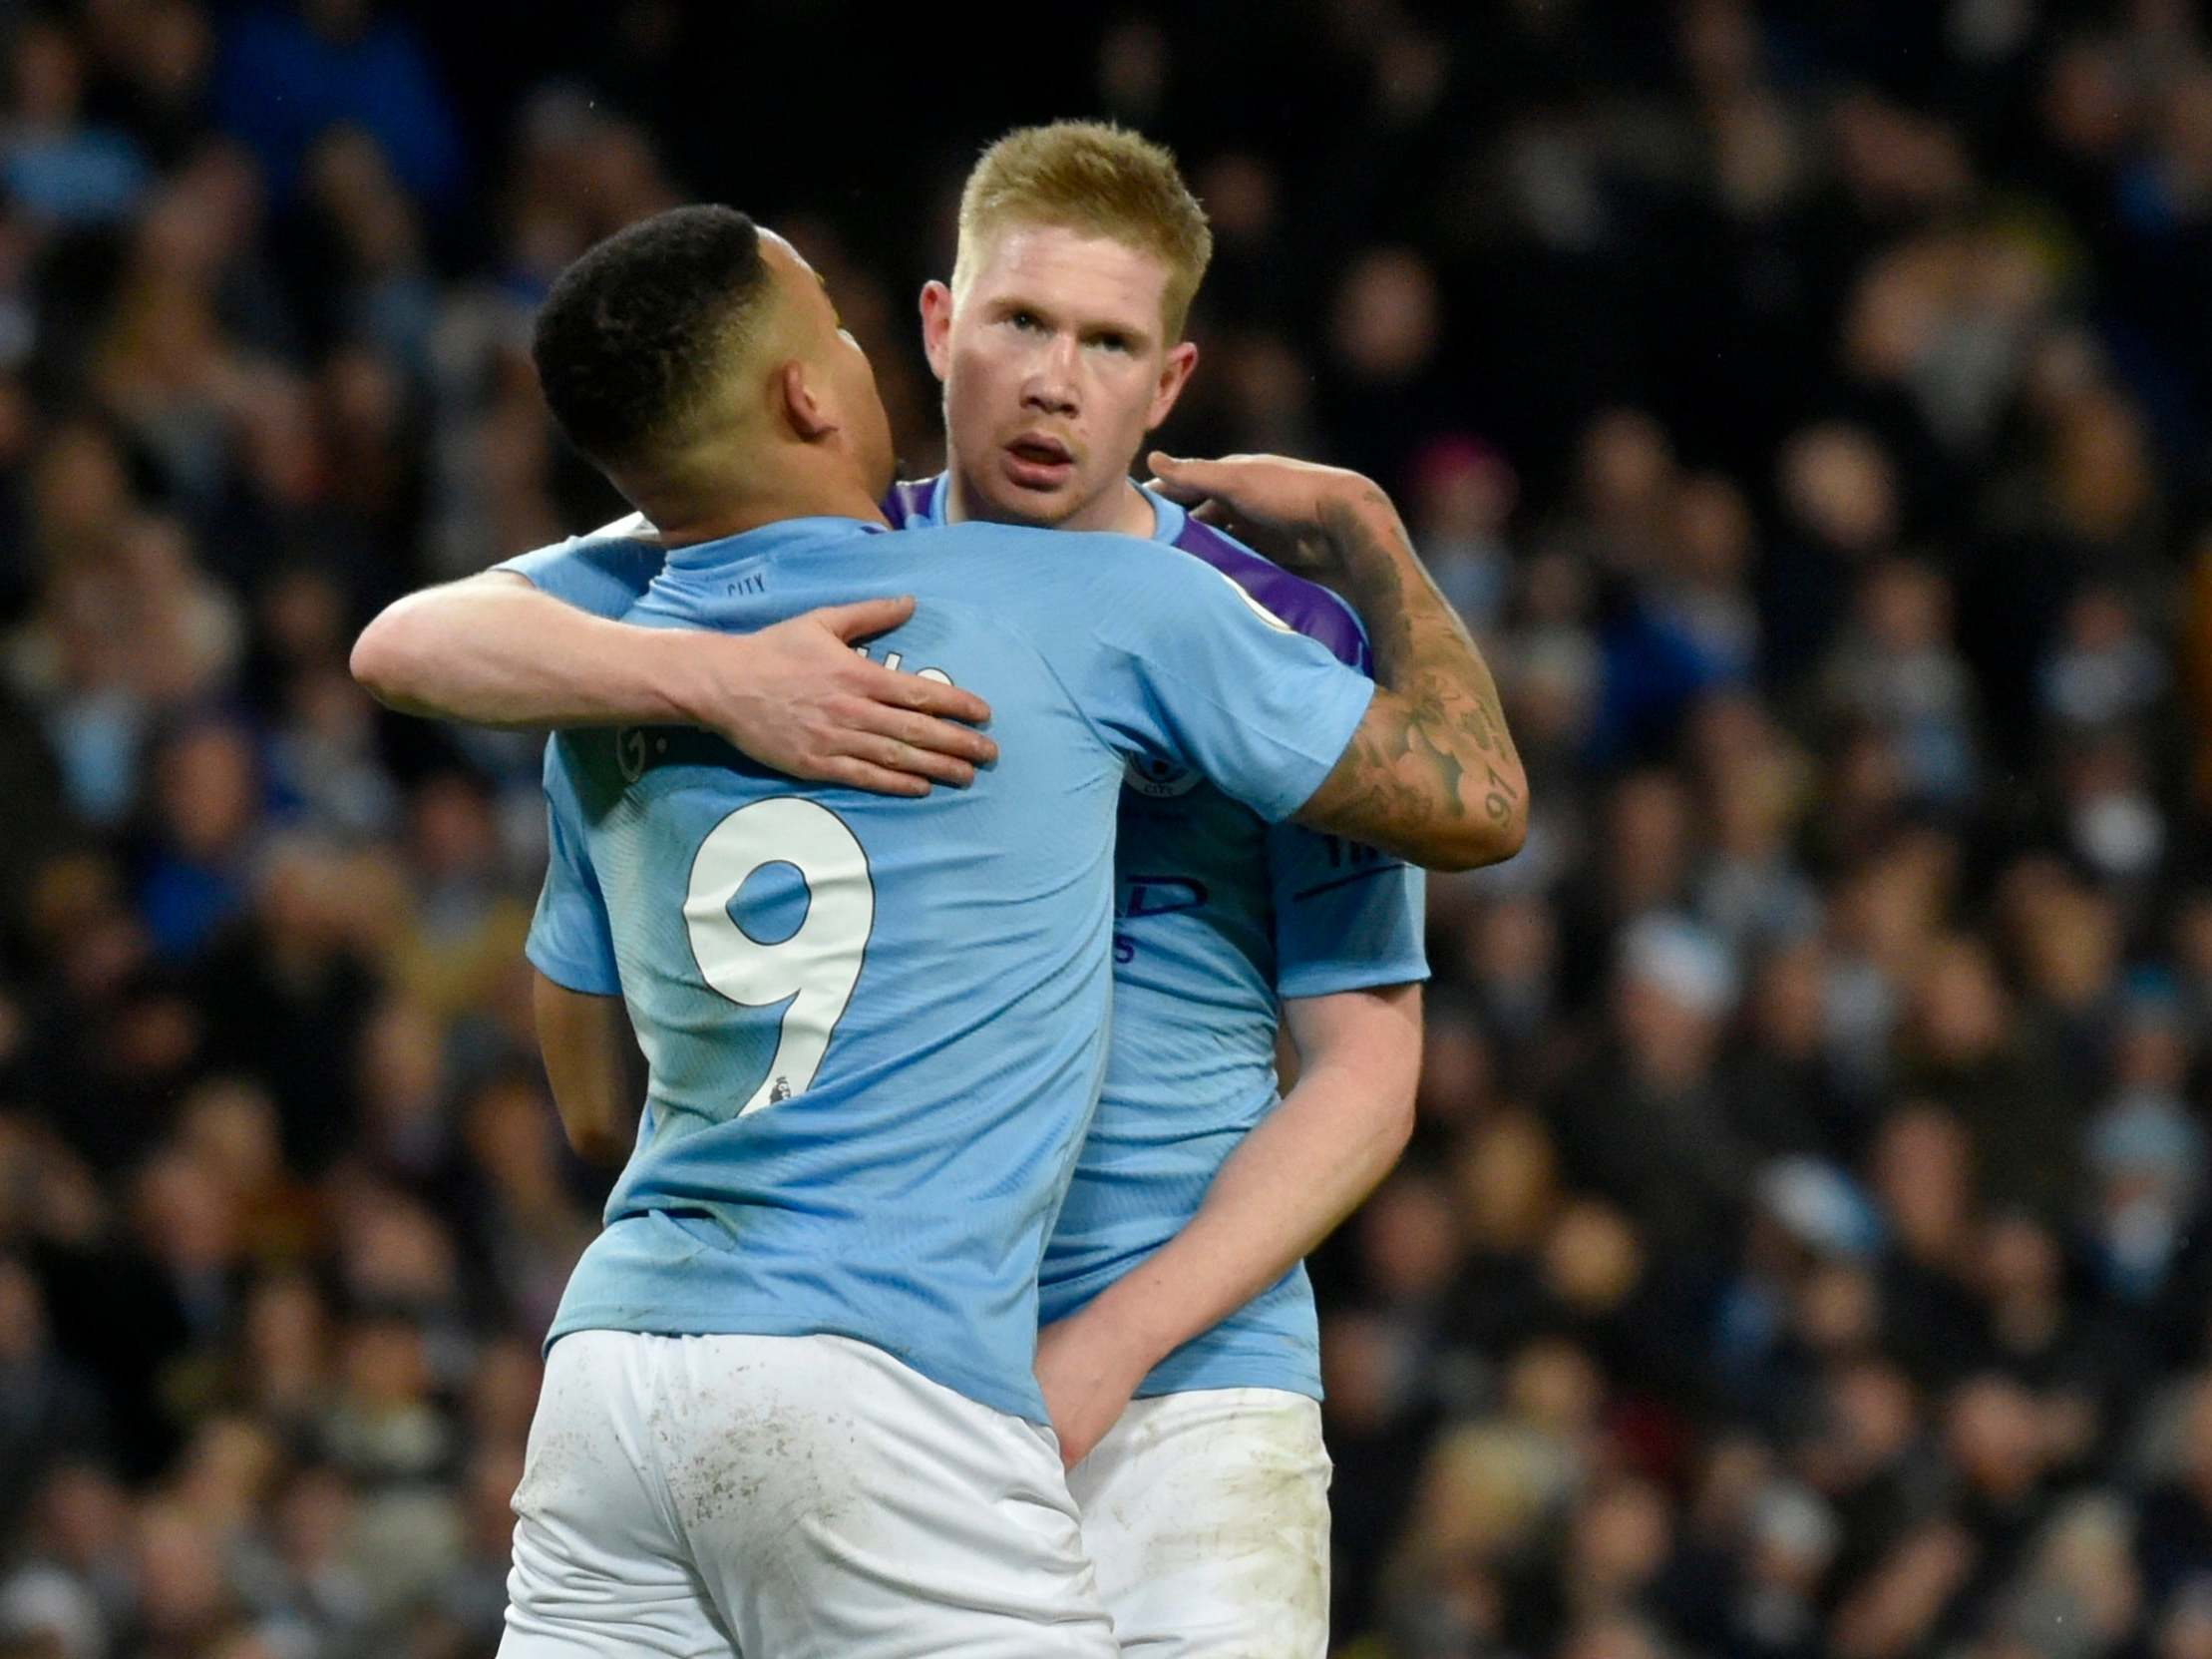 Kick-off time and TV info for Man City vs Everton